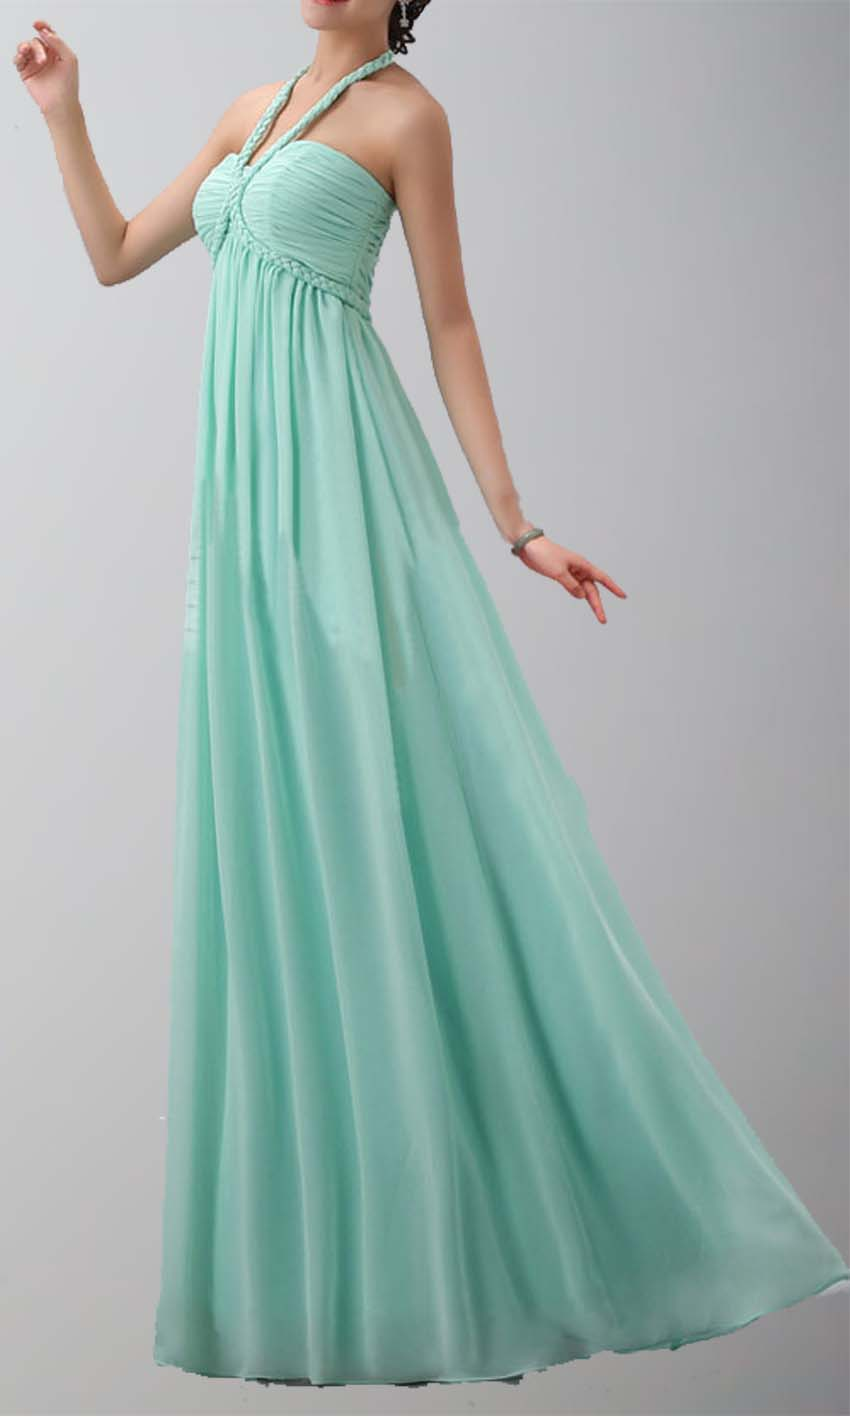 Teal Halter Neck Long Chiffon Prom Dress/Bridesmaid Dress KSP169 [KSP169] - £84.00 : Cheap Prom Dresses Uk, Bridesmaid Dresses, 2014 Prom & Evening Dresses, Look for cheap elegant prom dresses 2014, cocktail gowns, or dresses for special occasions? kissprom.co.uk offers various bridesmaid dresses, evening dress, free shipping to UK etc.